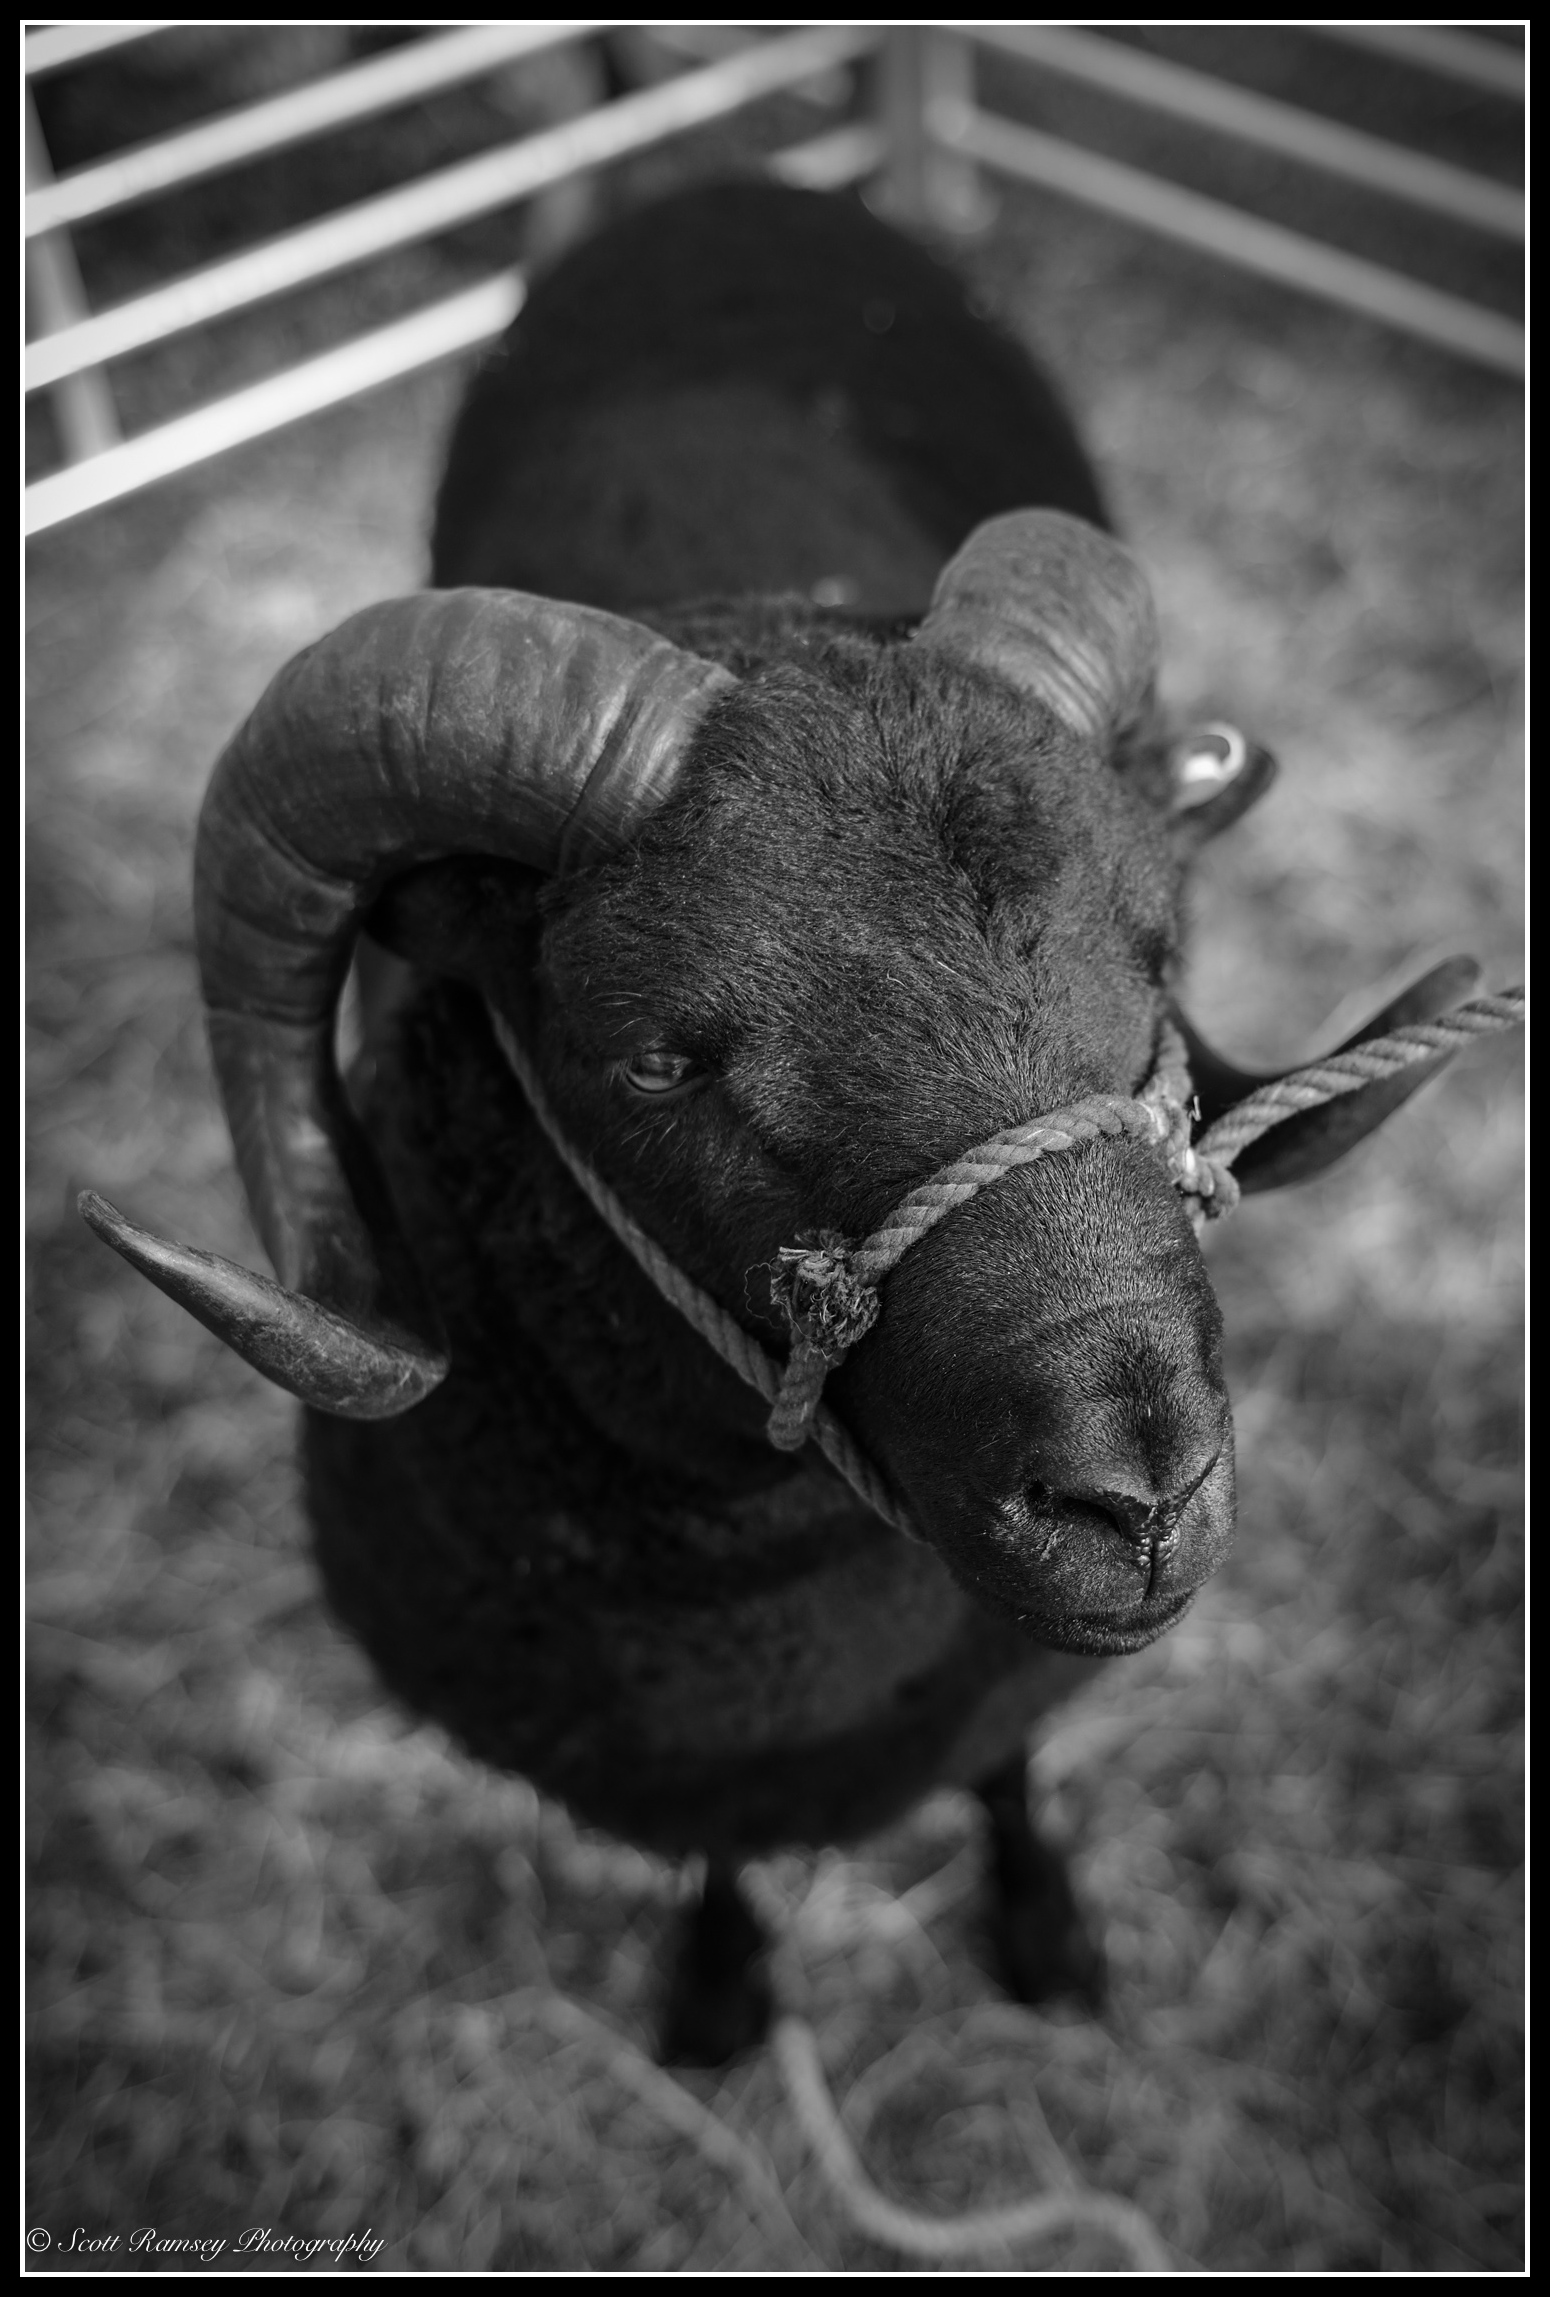 A black sheep in a pen at the Findon Sheep Fair.